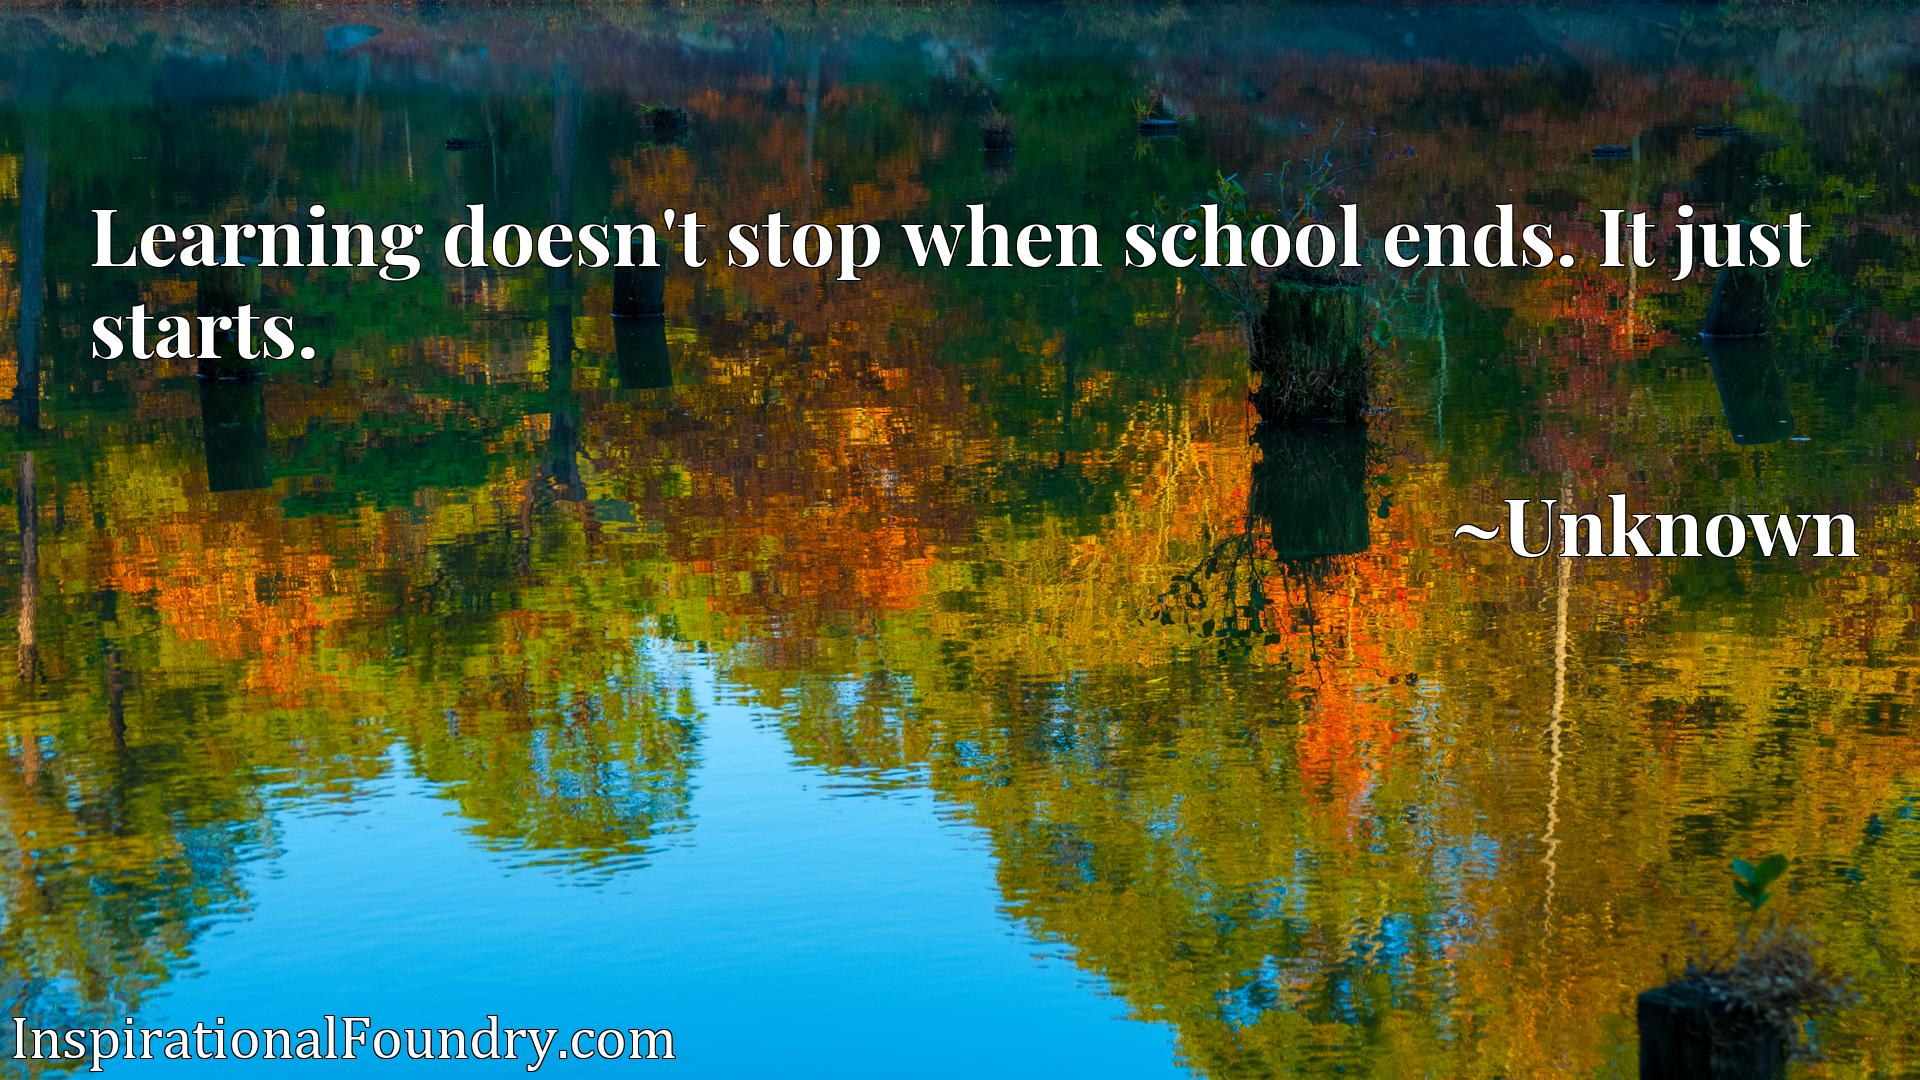 Learning doesn't stop when school ends. It just starts.